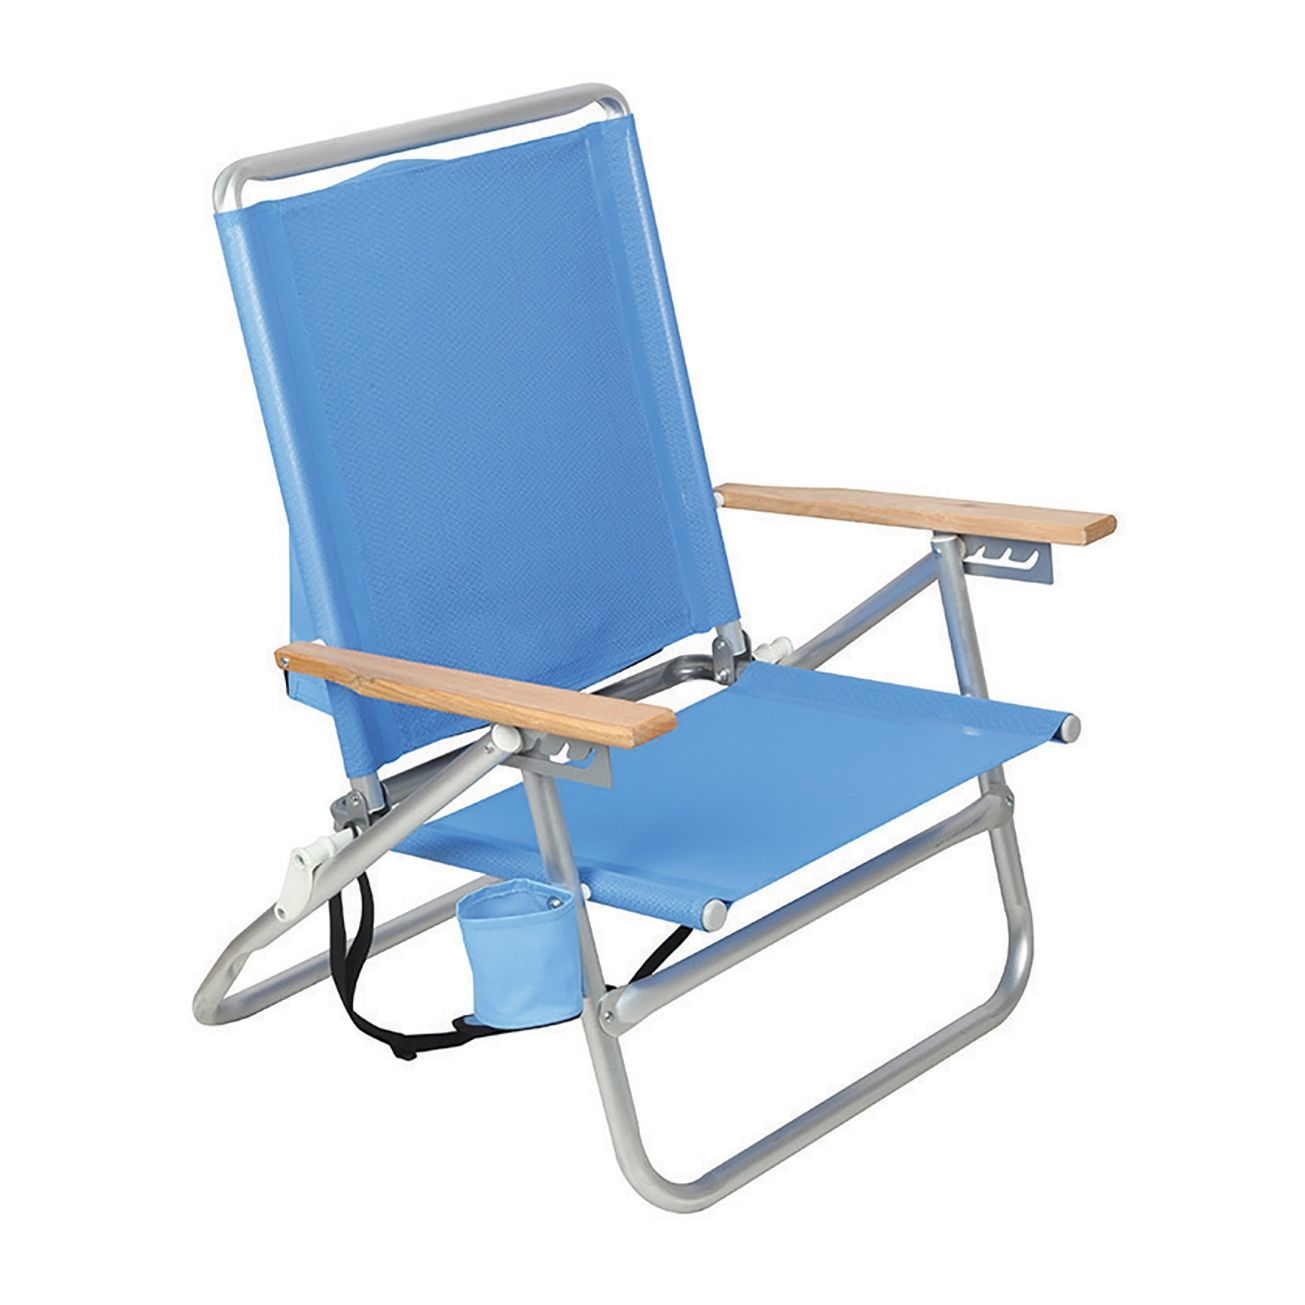 Target Beach Chairs Sale Outdoor Chair With Canopy Backpack For Cheap And Camping